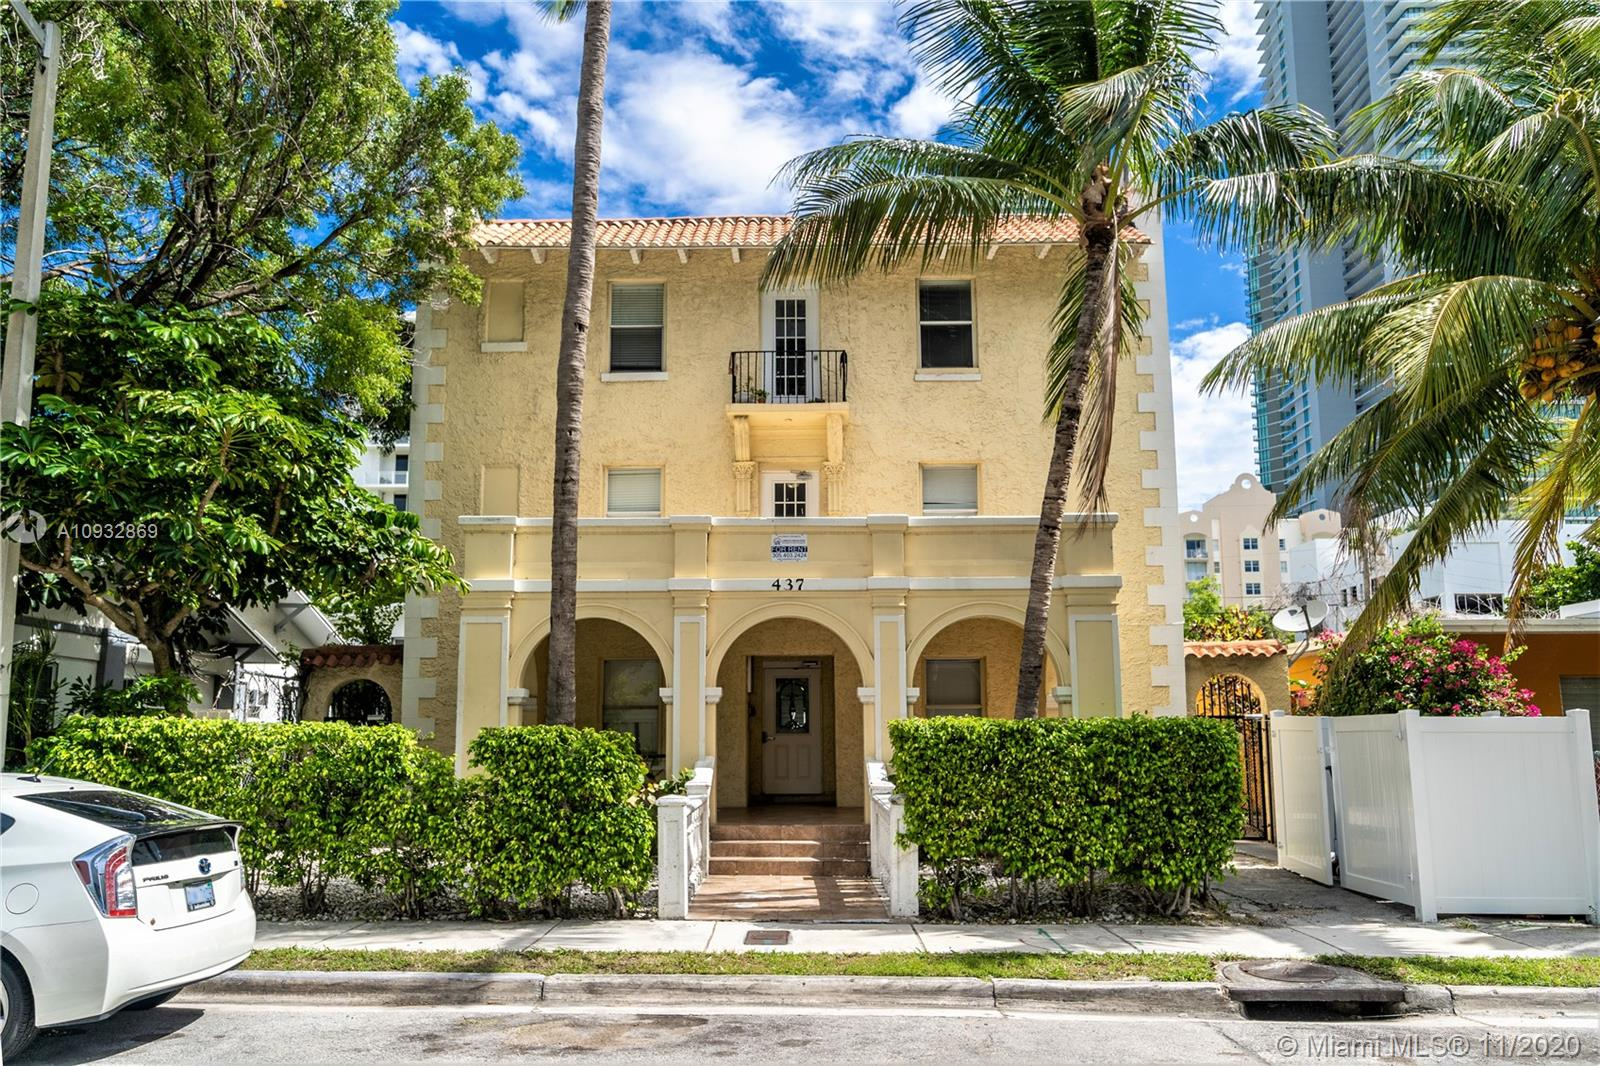 437 NE 29 ST #103 For Sale A10932869, FL